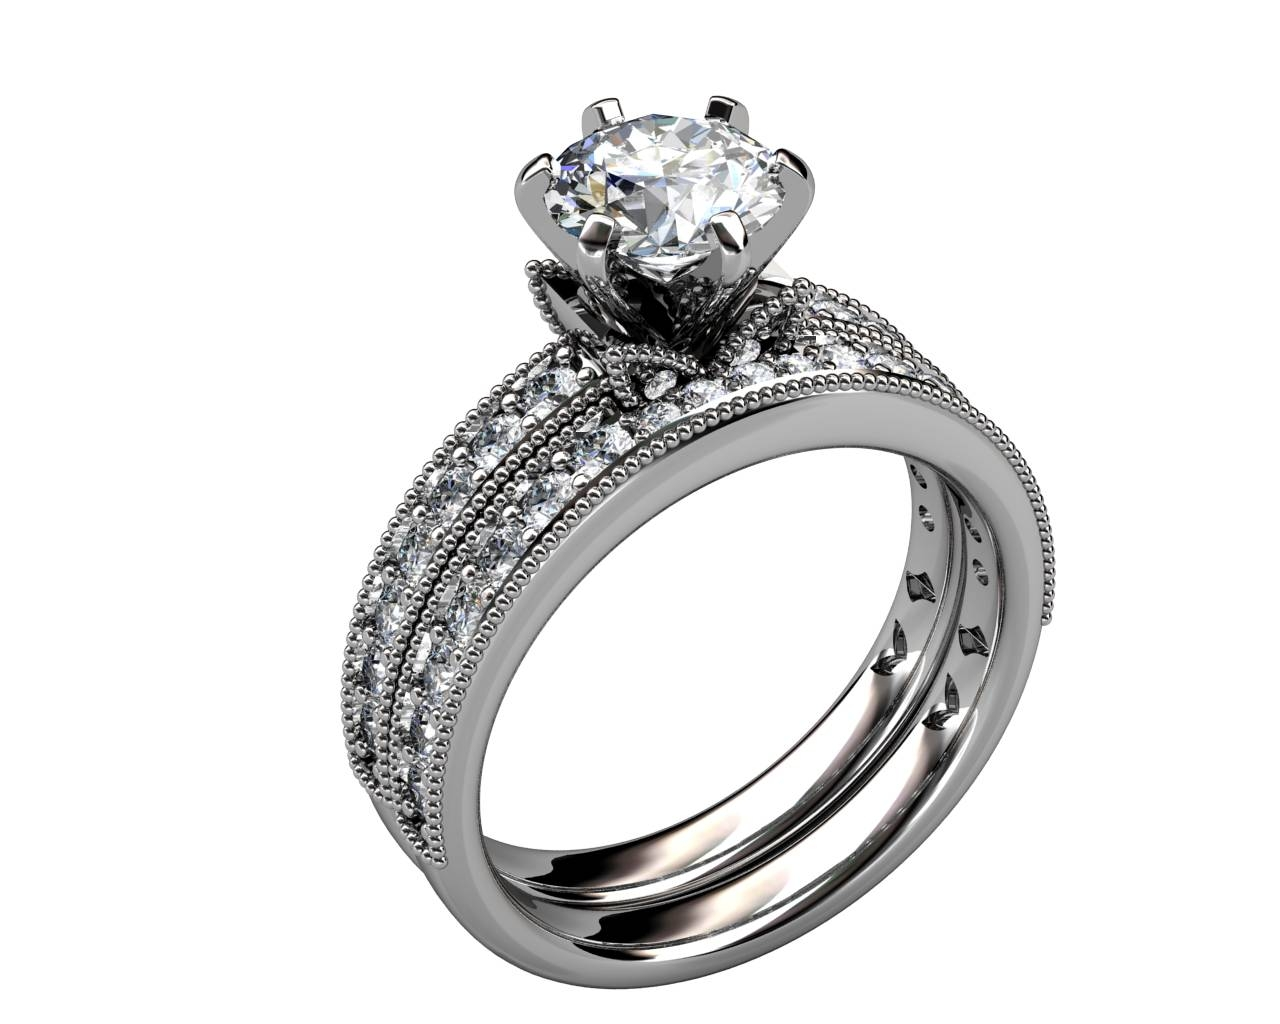 Inexpensive Diamond Rings | Wedding, Promise, Diamond, Engagement Pertaining To Pompeii Engagement Rings (View 10 of 15)